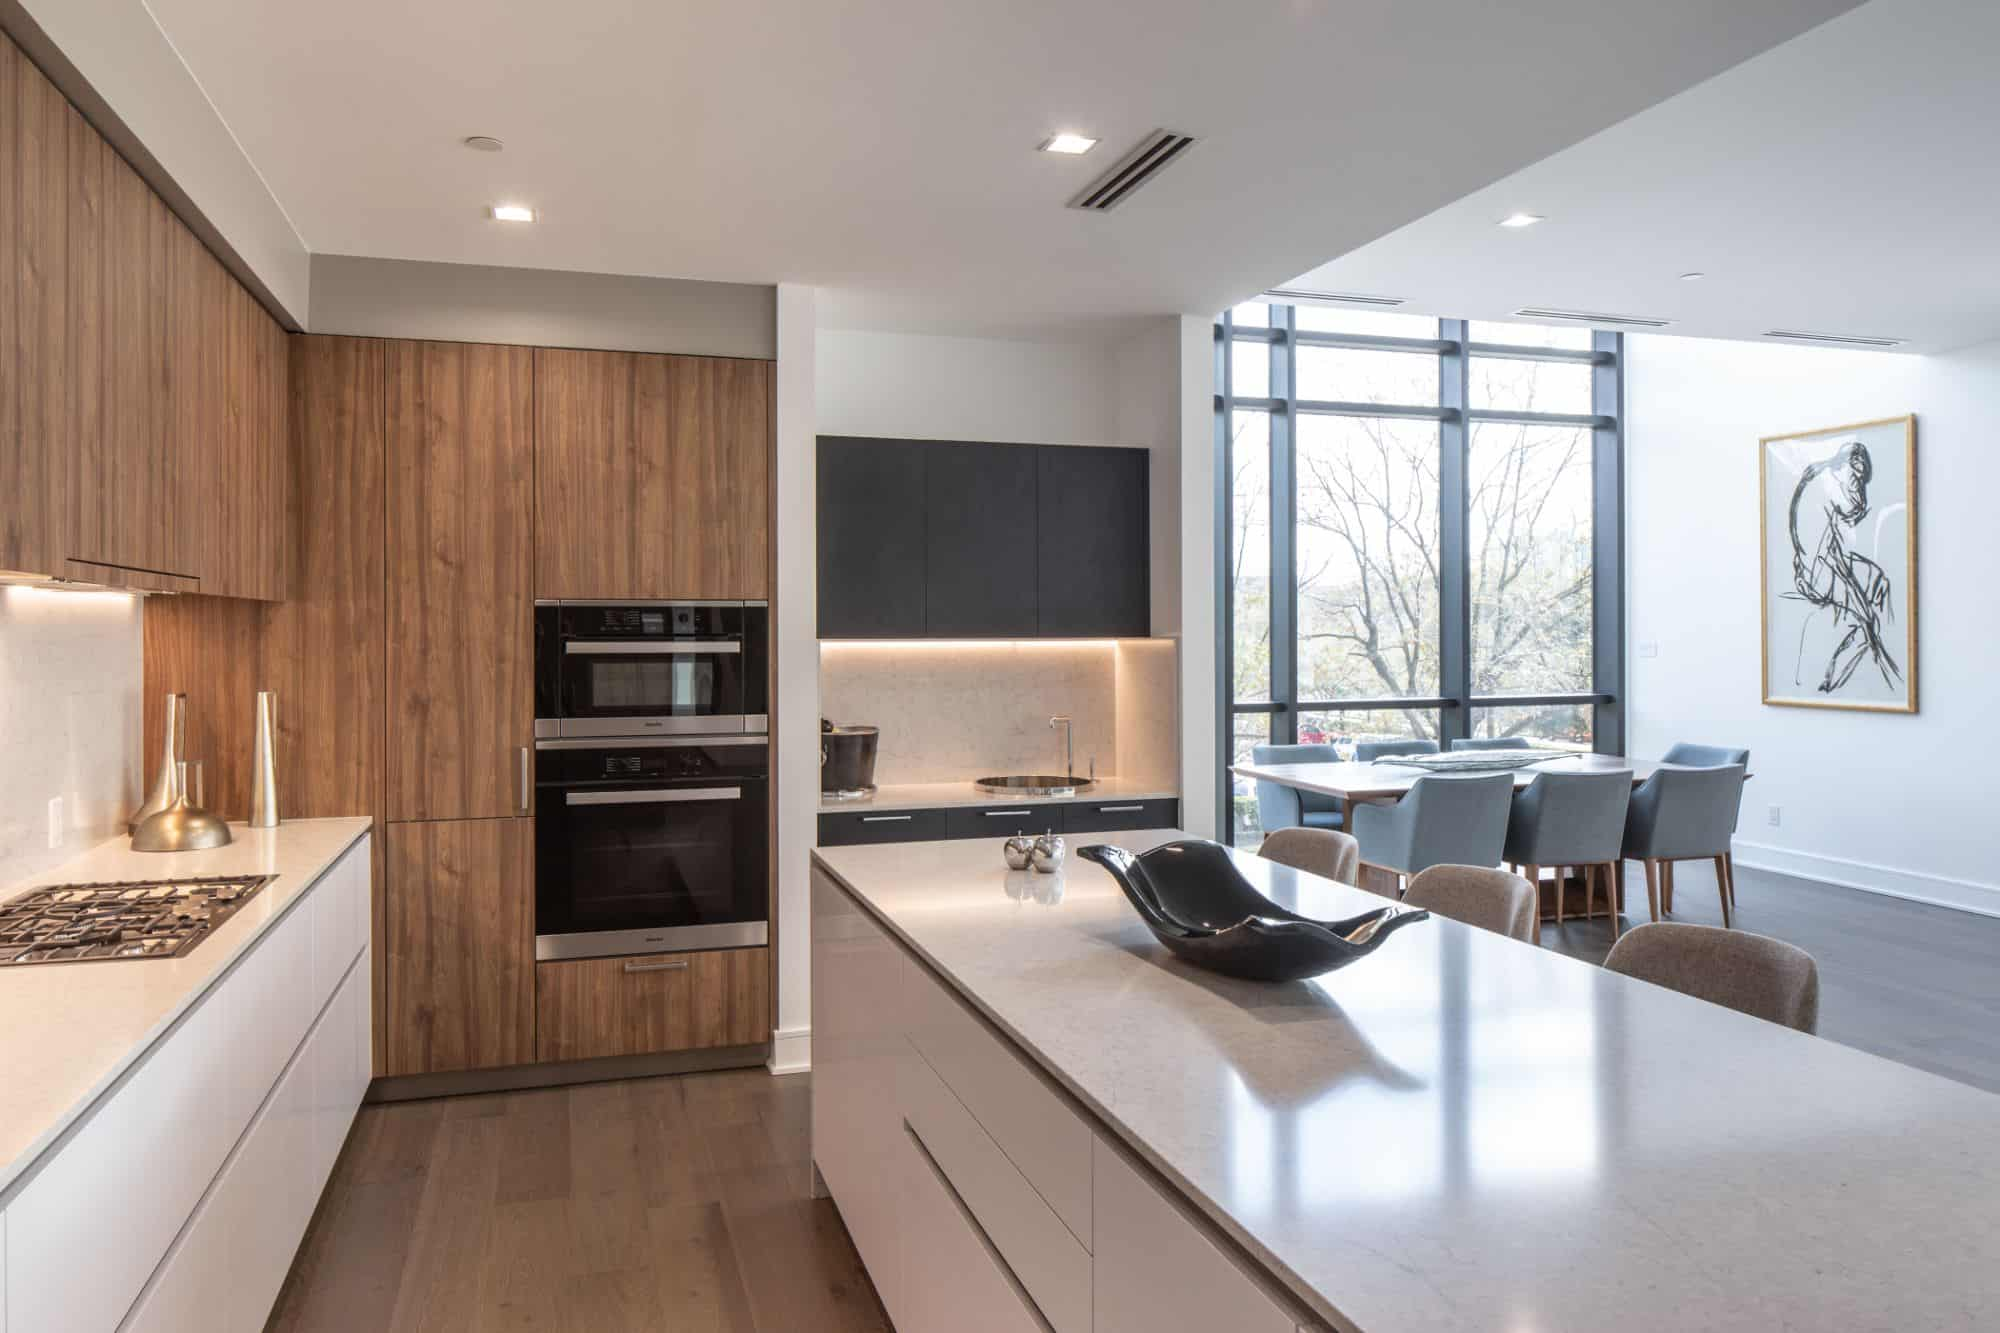 Luxury solid surface kitchen with natural light wood accents amplifies the natural light from the floor to ceiling windows